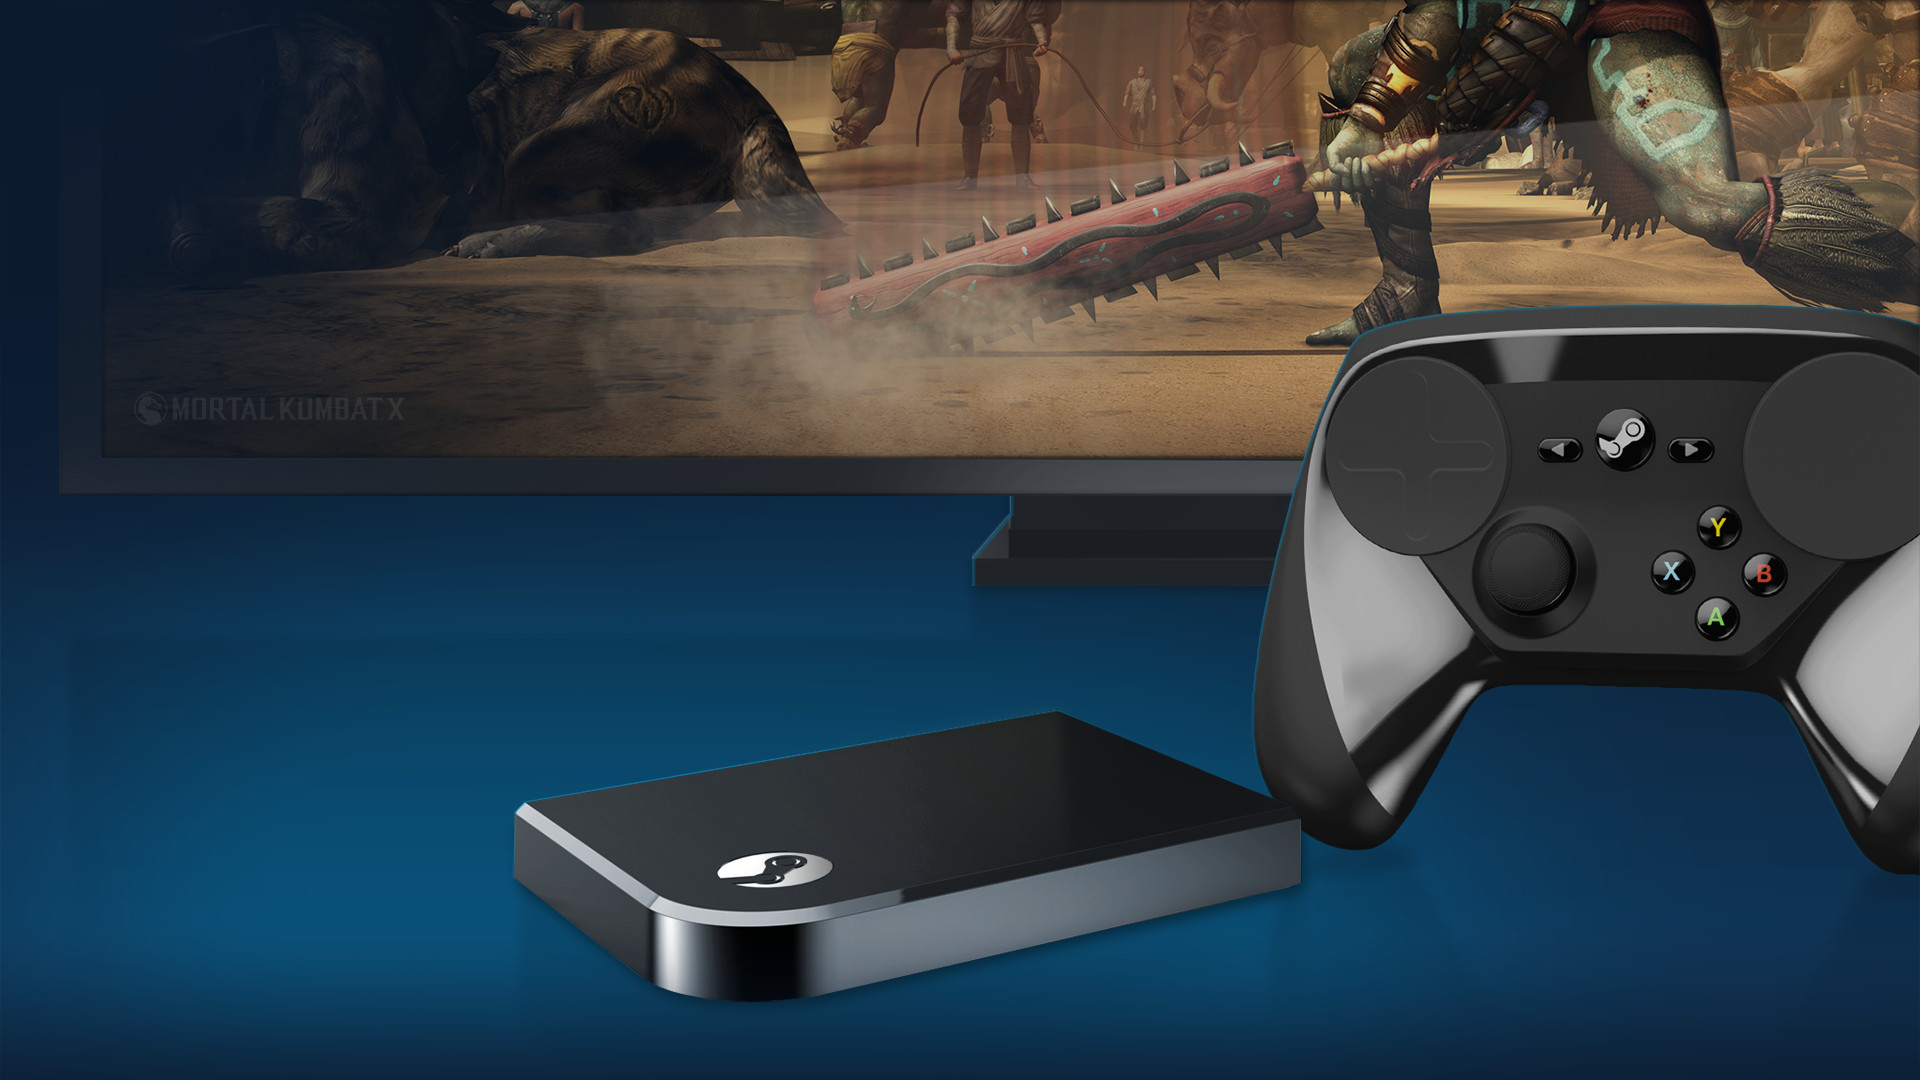 Steam Link and Controller